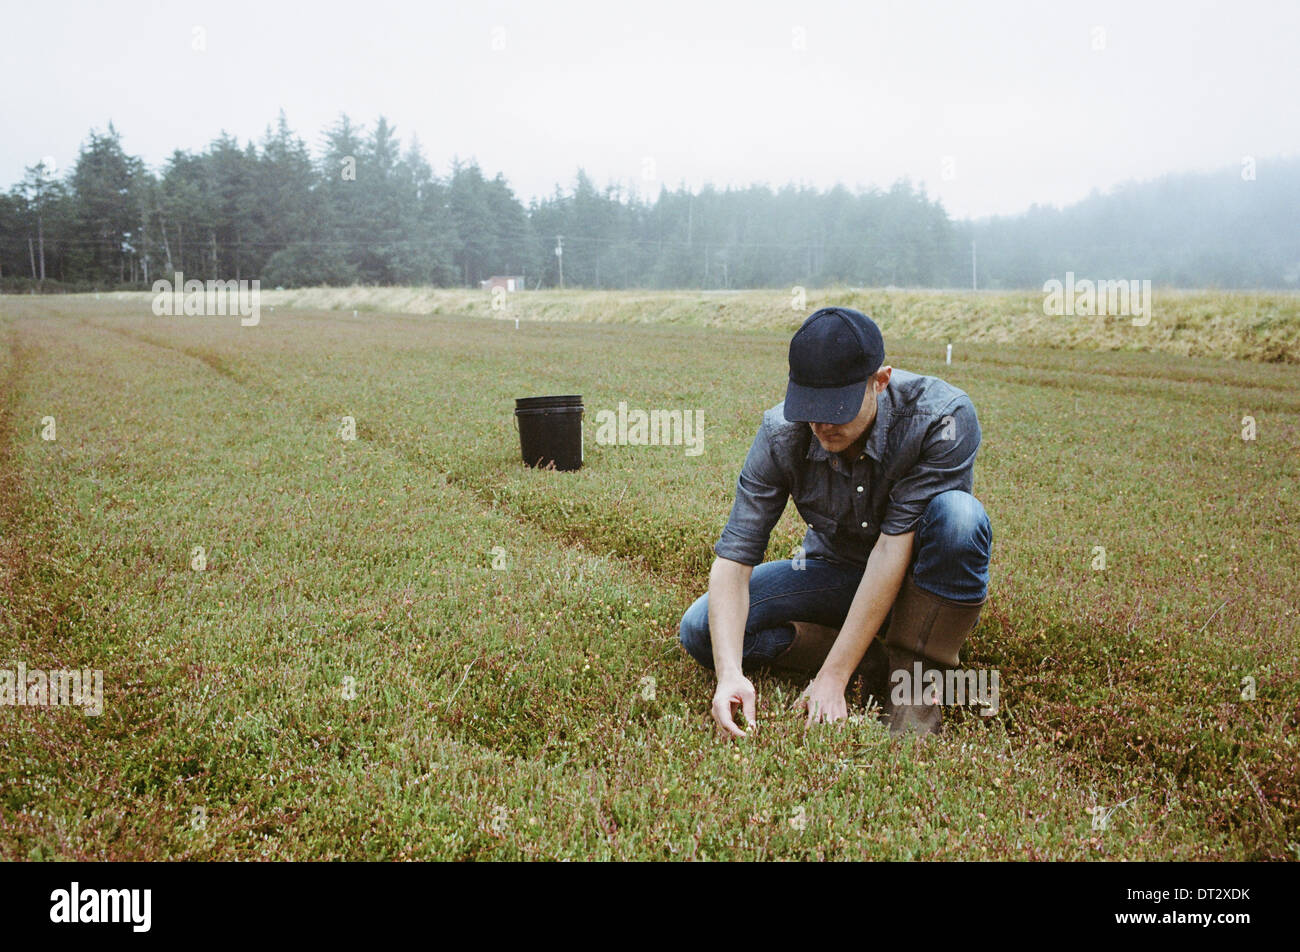 A cranberry farm in Massachusetts Crops in the fields A young man working on the land harvesting the crop - Stock Image